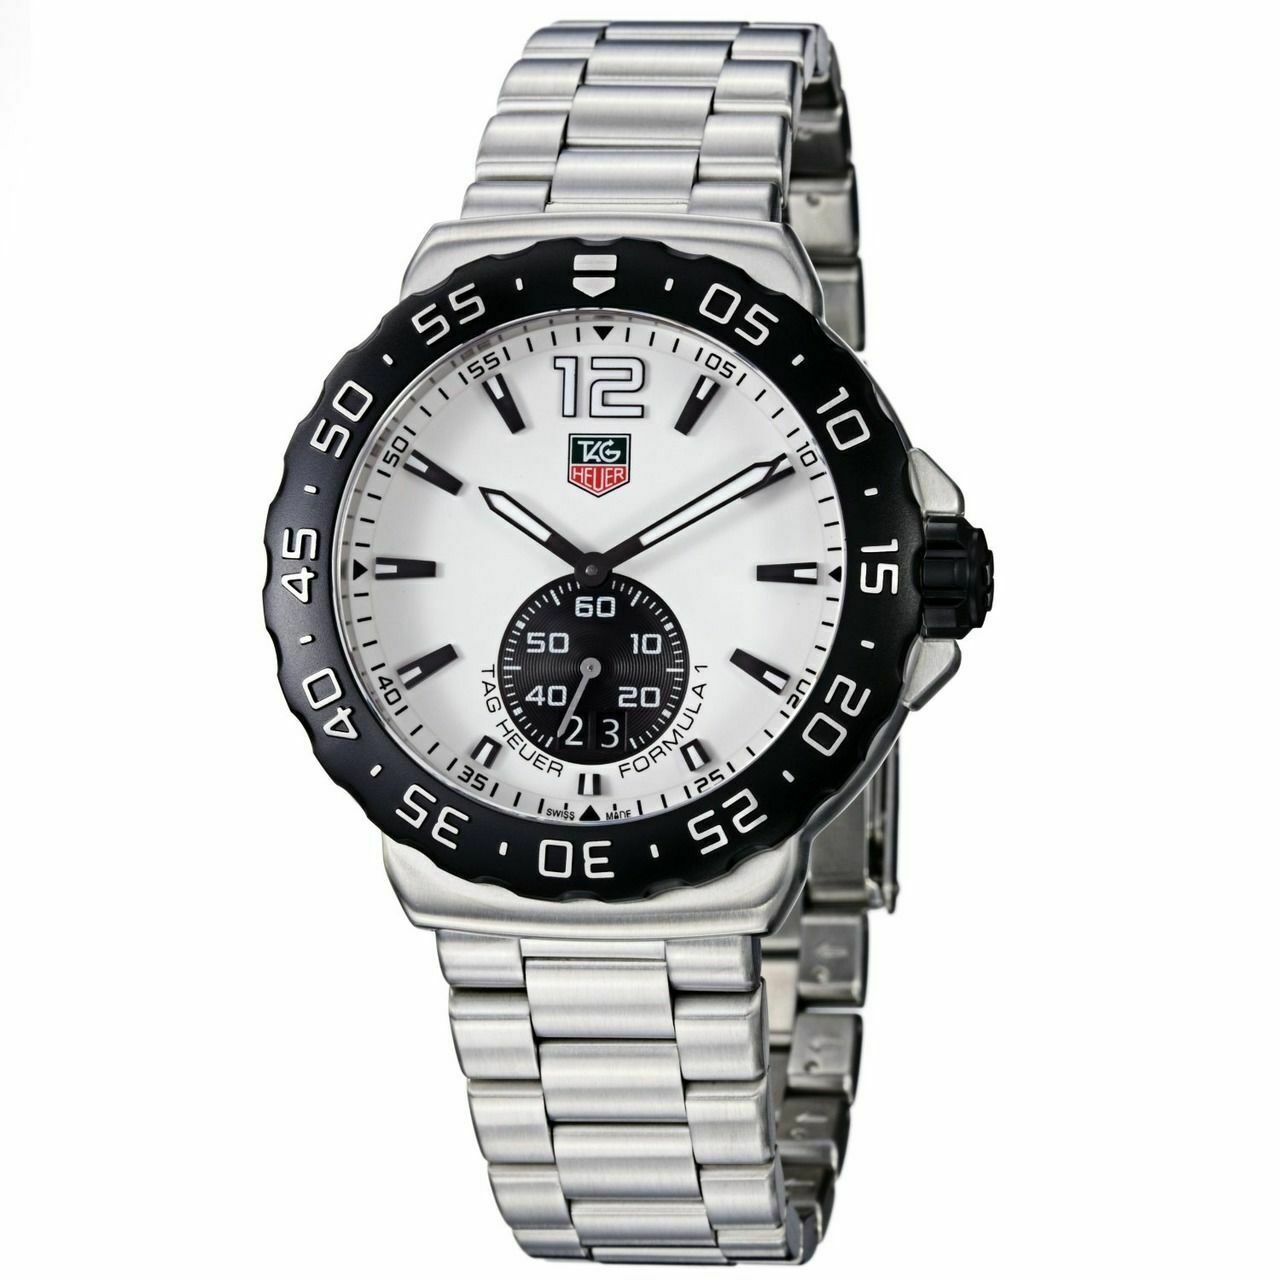 TAG HEUER FORMULA 1 WAU1111.BA0858 MEN'S SWISS QUARTZ WHITE SPORTS STEEL WATCH